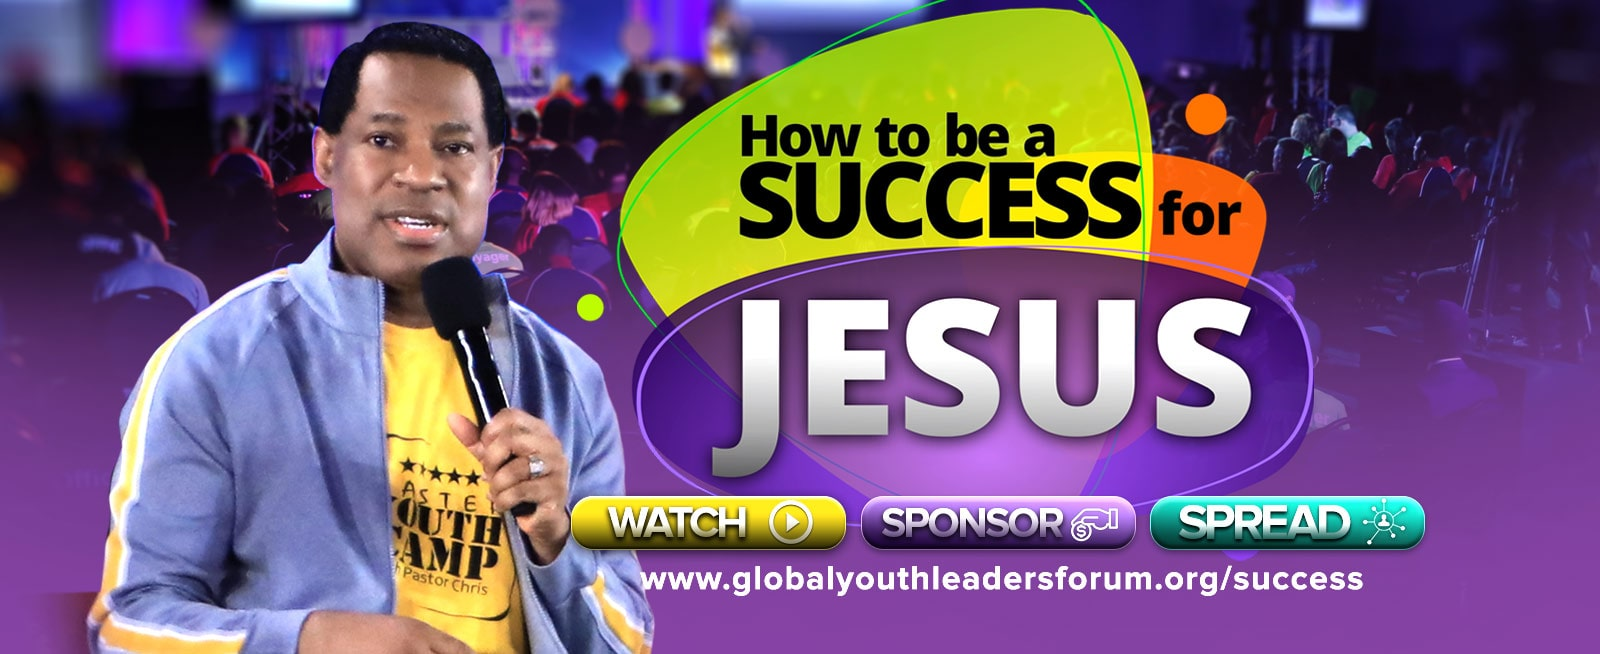 How To Be A Success For Jesus